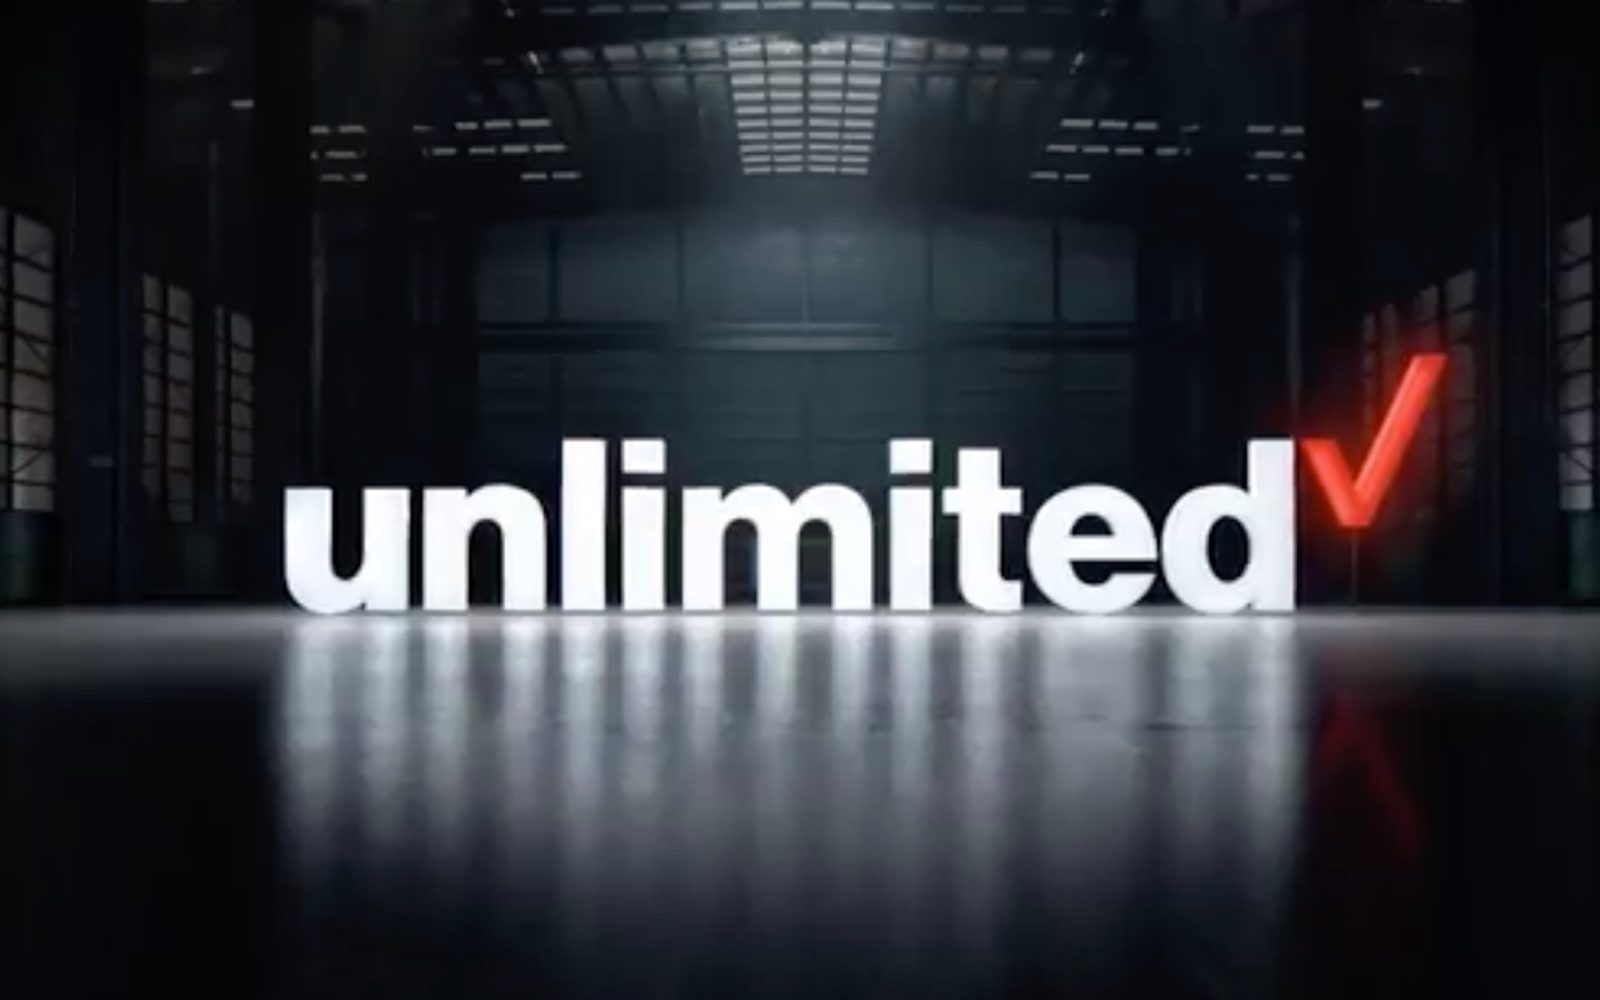 Verizon introduces new unlimited data plan, $80/mo for